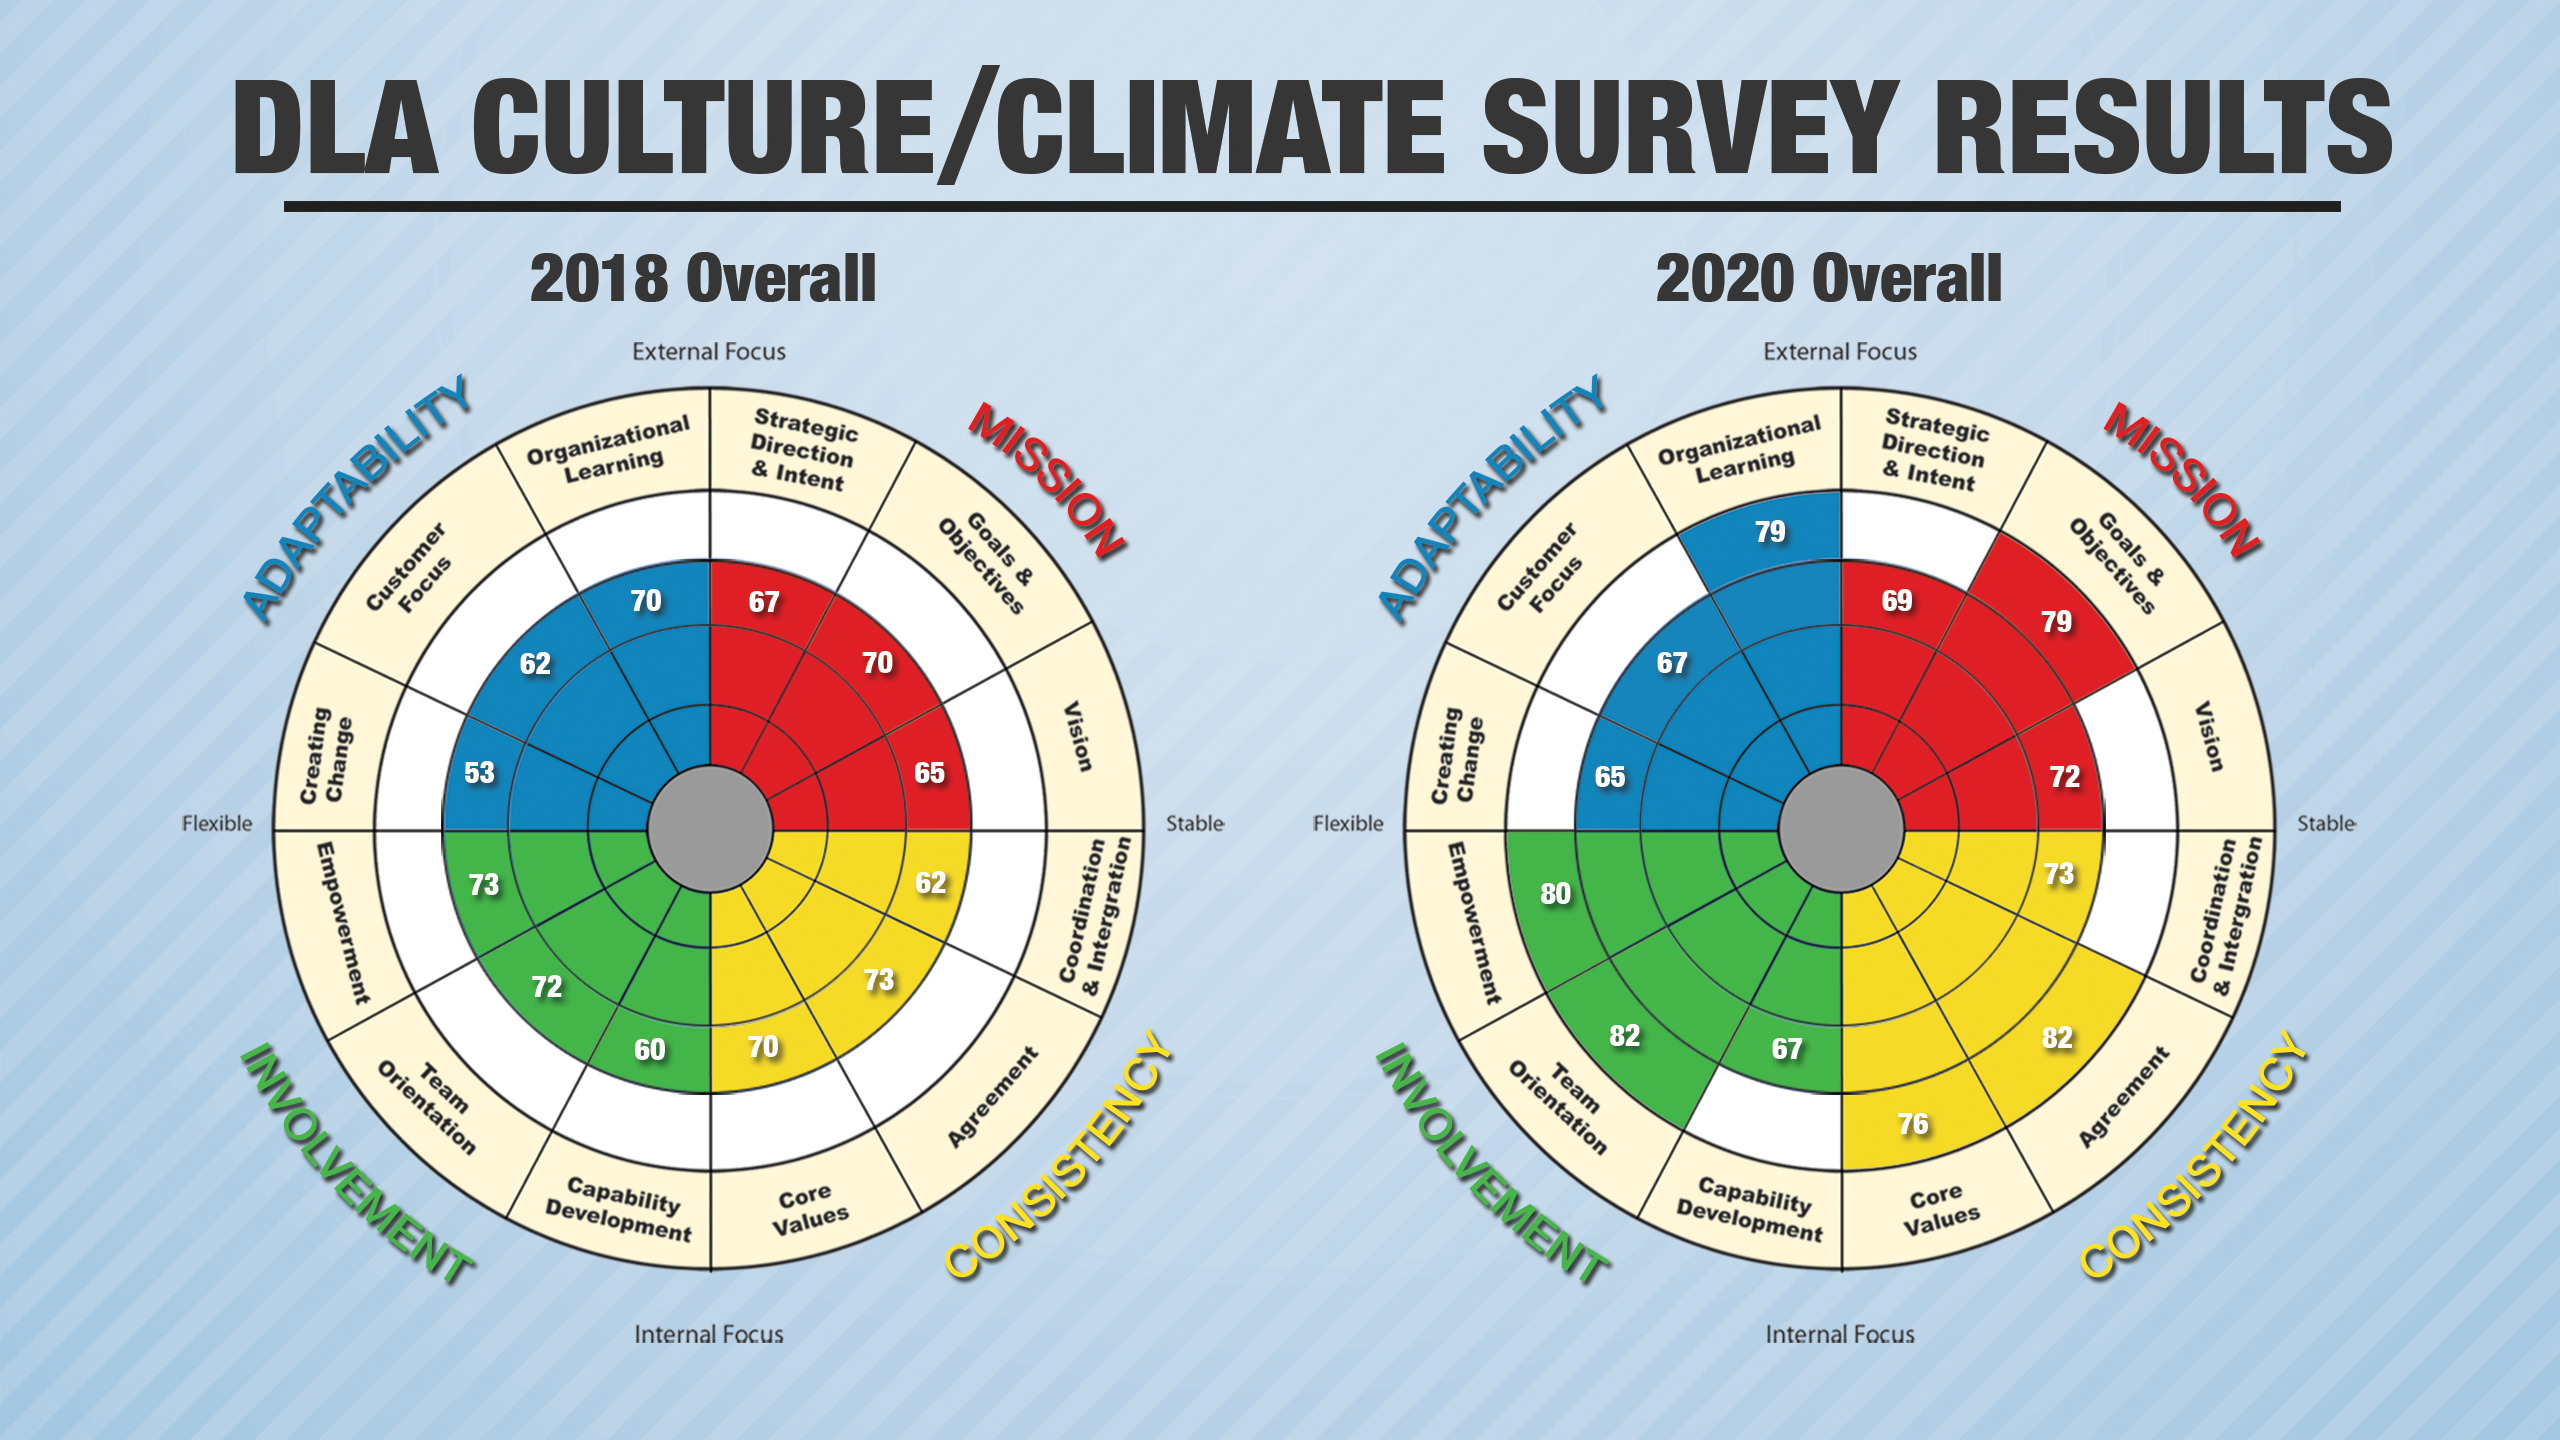 Two charts show the differences in DLA's Culture/Climate Survey results from 2018 to 2020